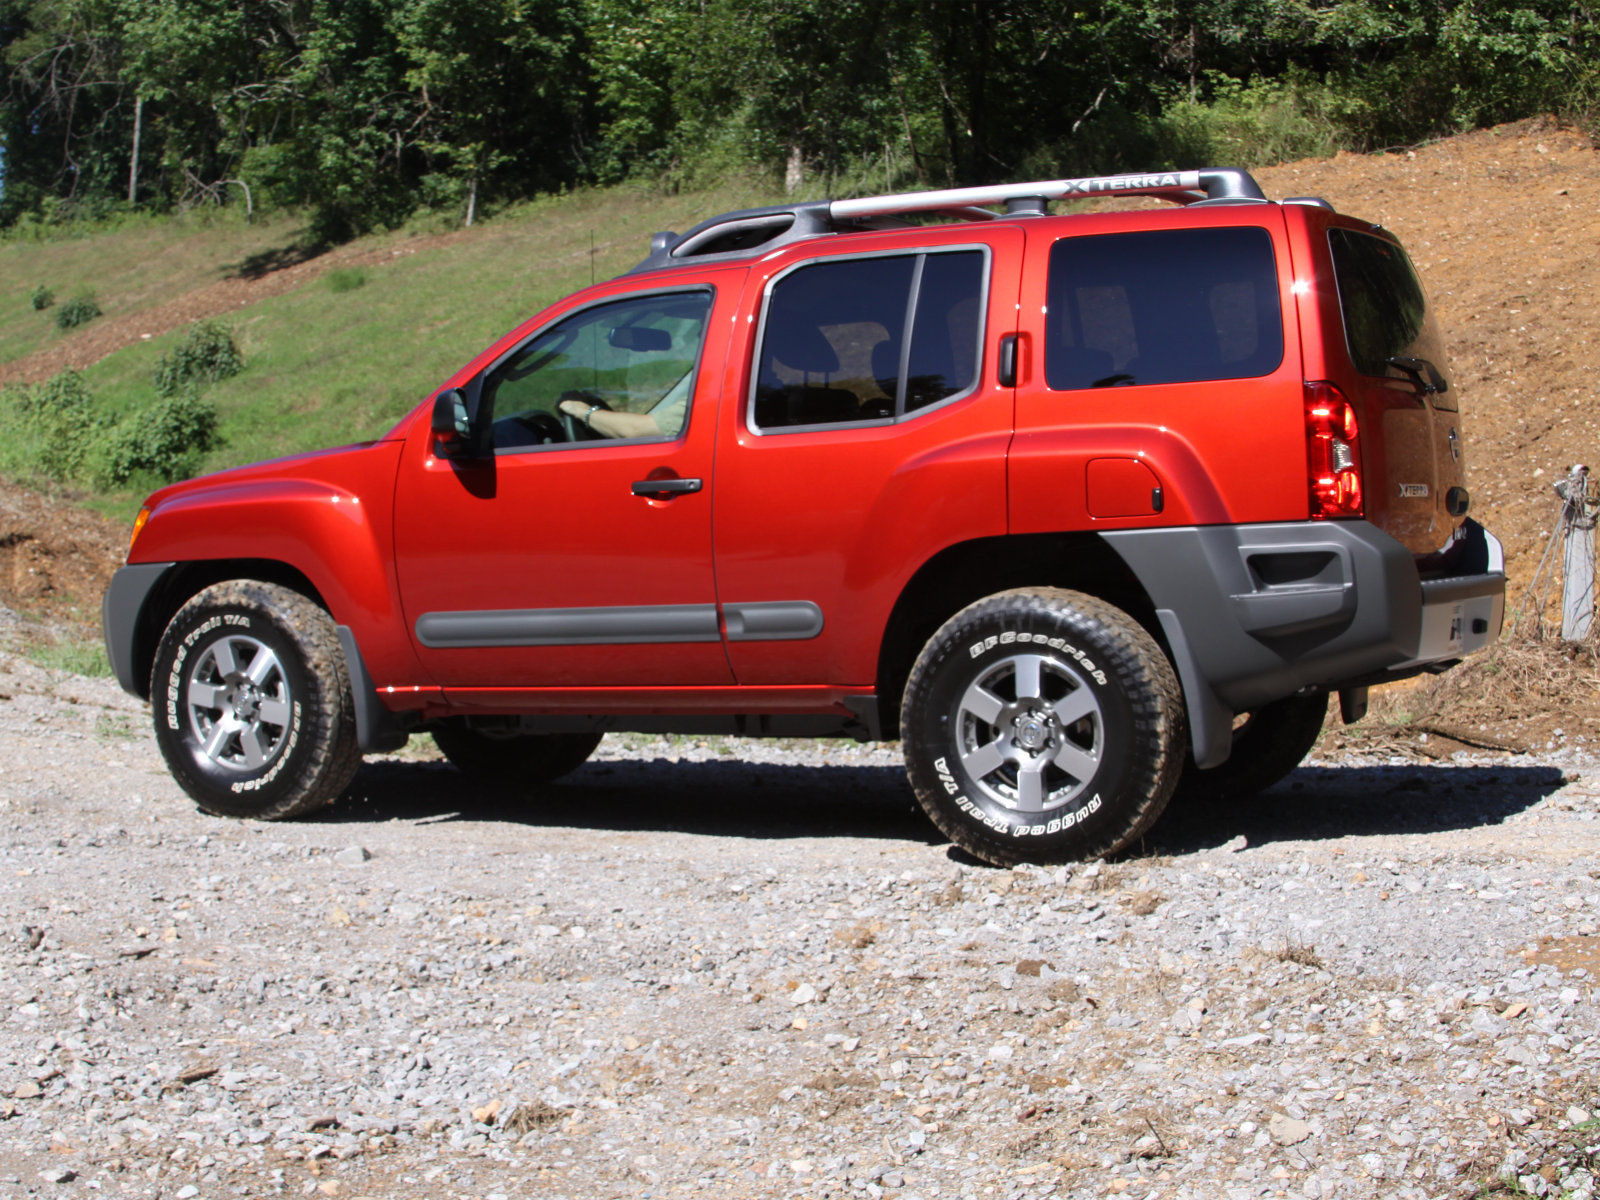 Nissan announced pricing info on the frontier, xterra, and pathfinder for the 2012 model year, revealing some